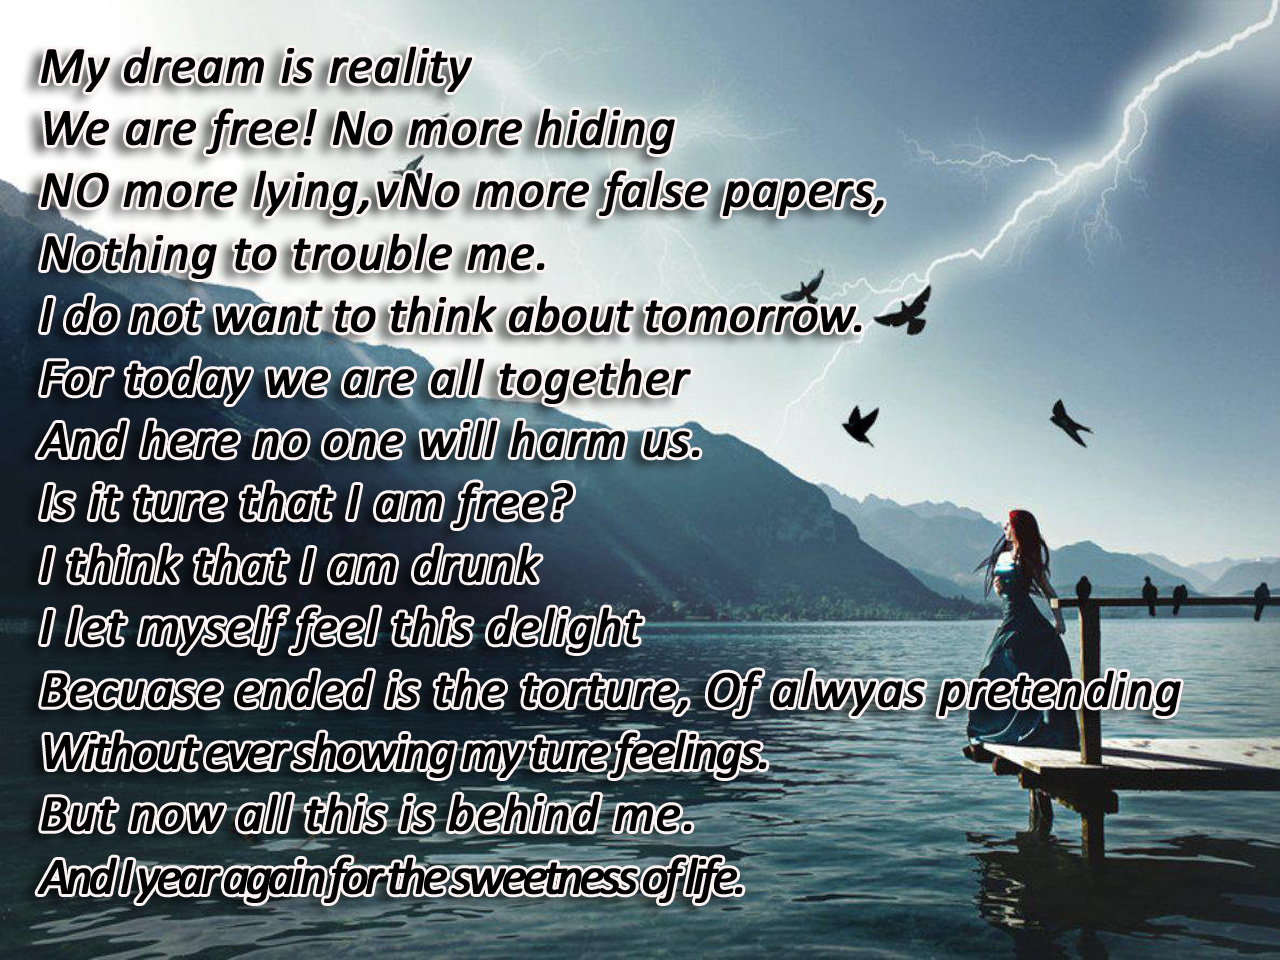 Freedom Poems With HD Wallpaper Free Download My Dream Is Reality